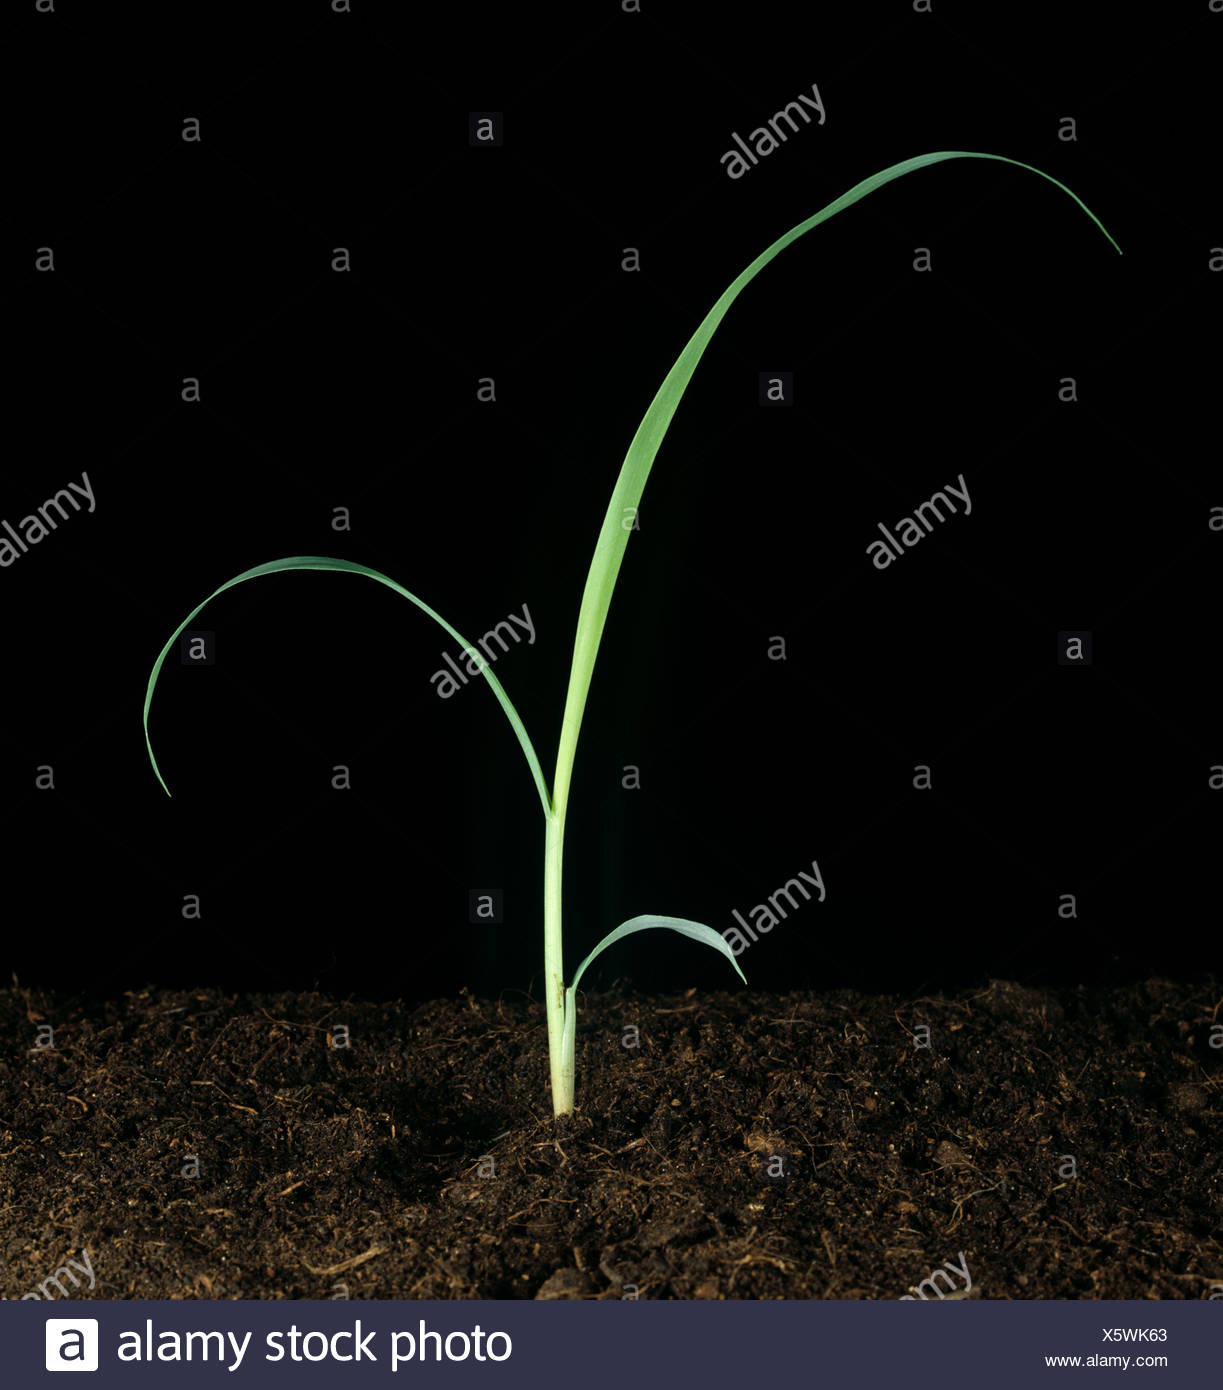 Johnson grass (Sorghum halepense) seedling grass weed - Stock Image